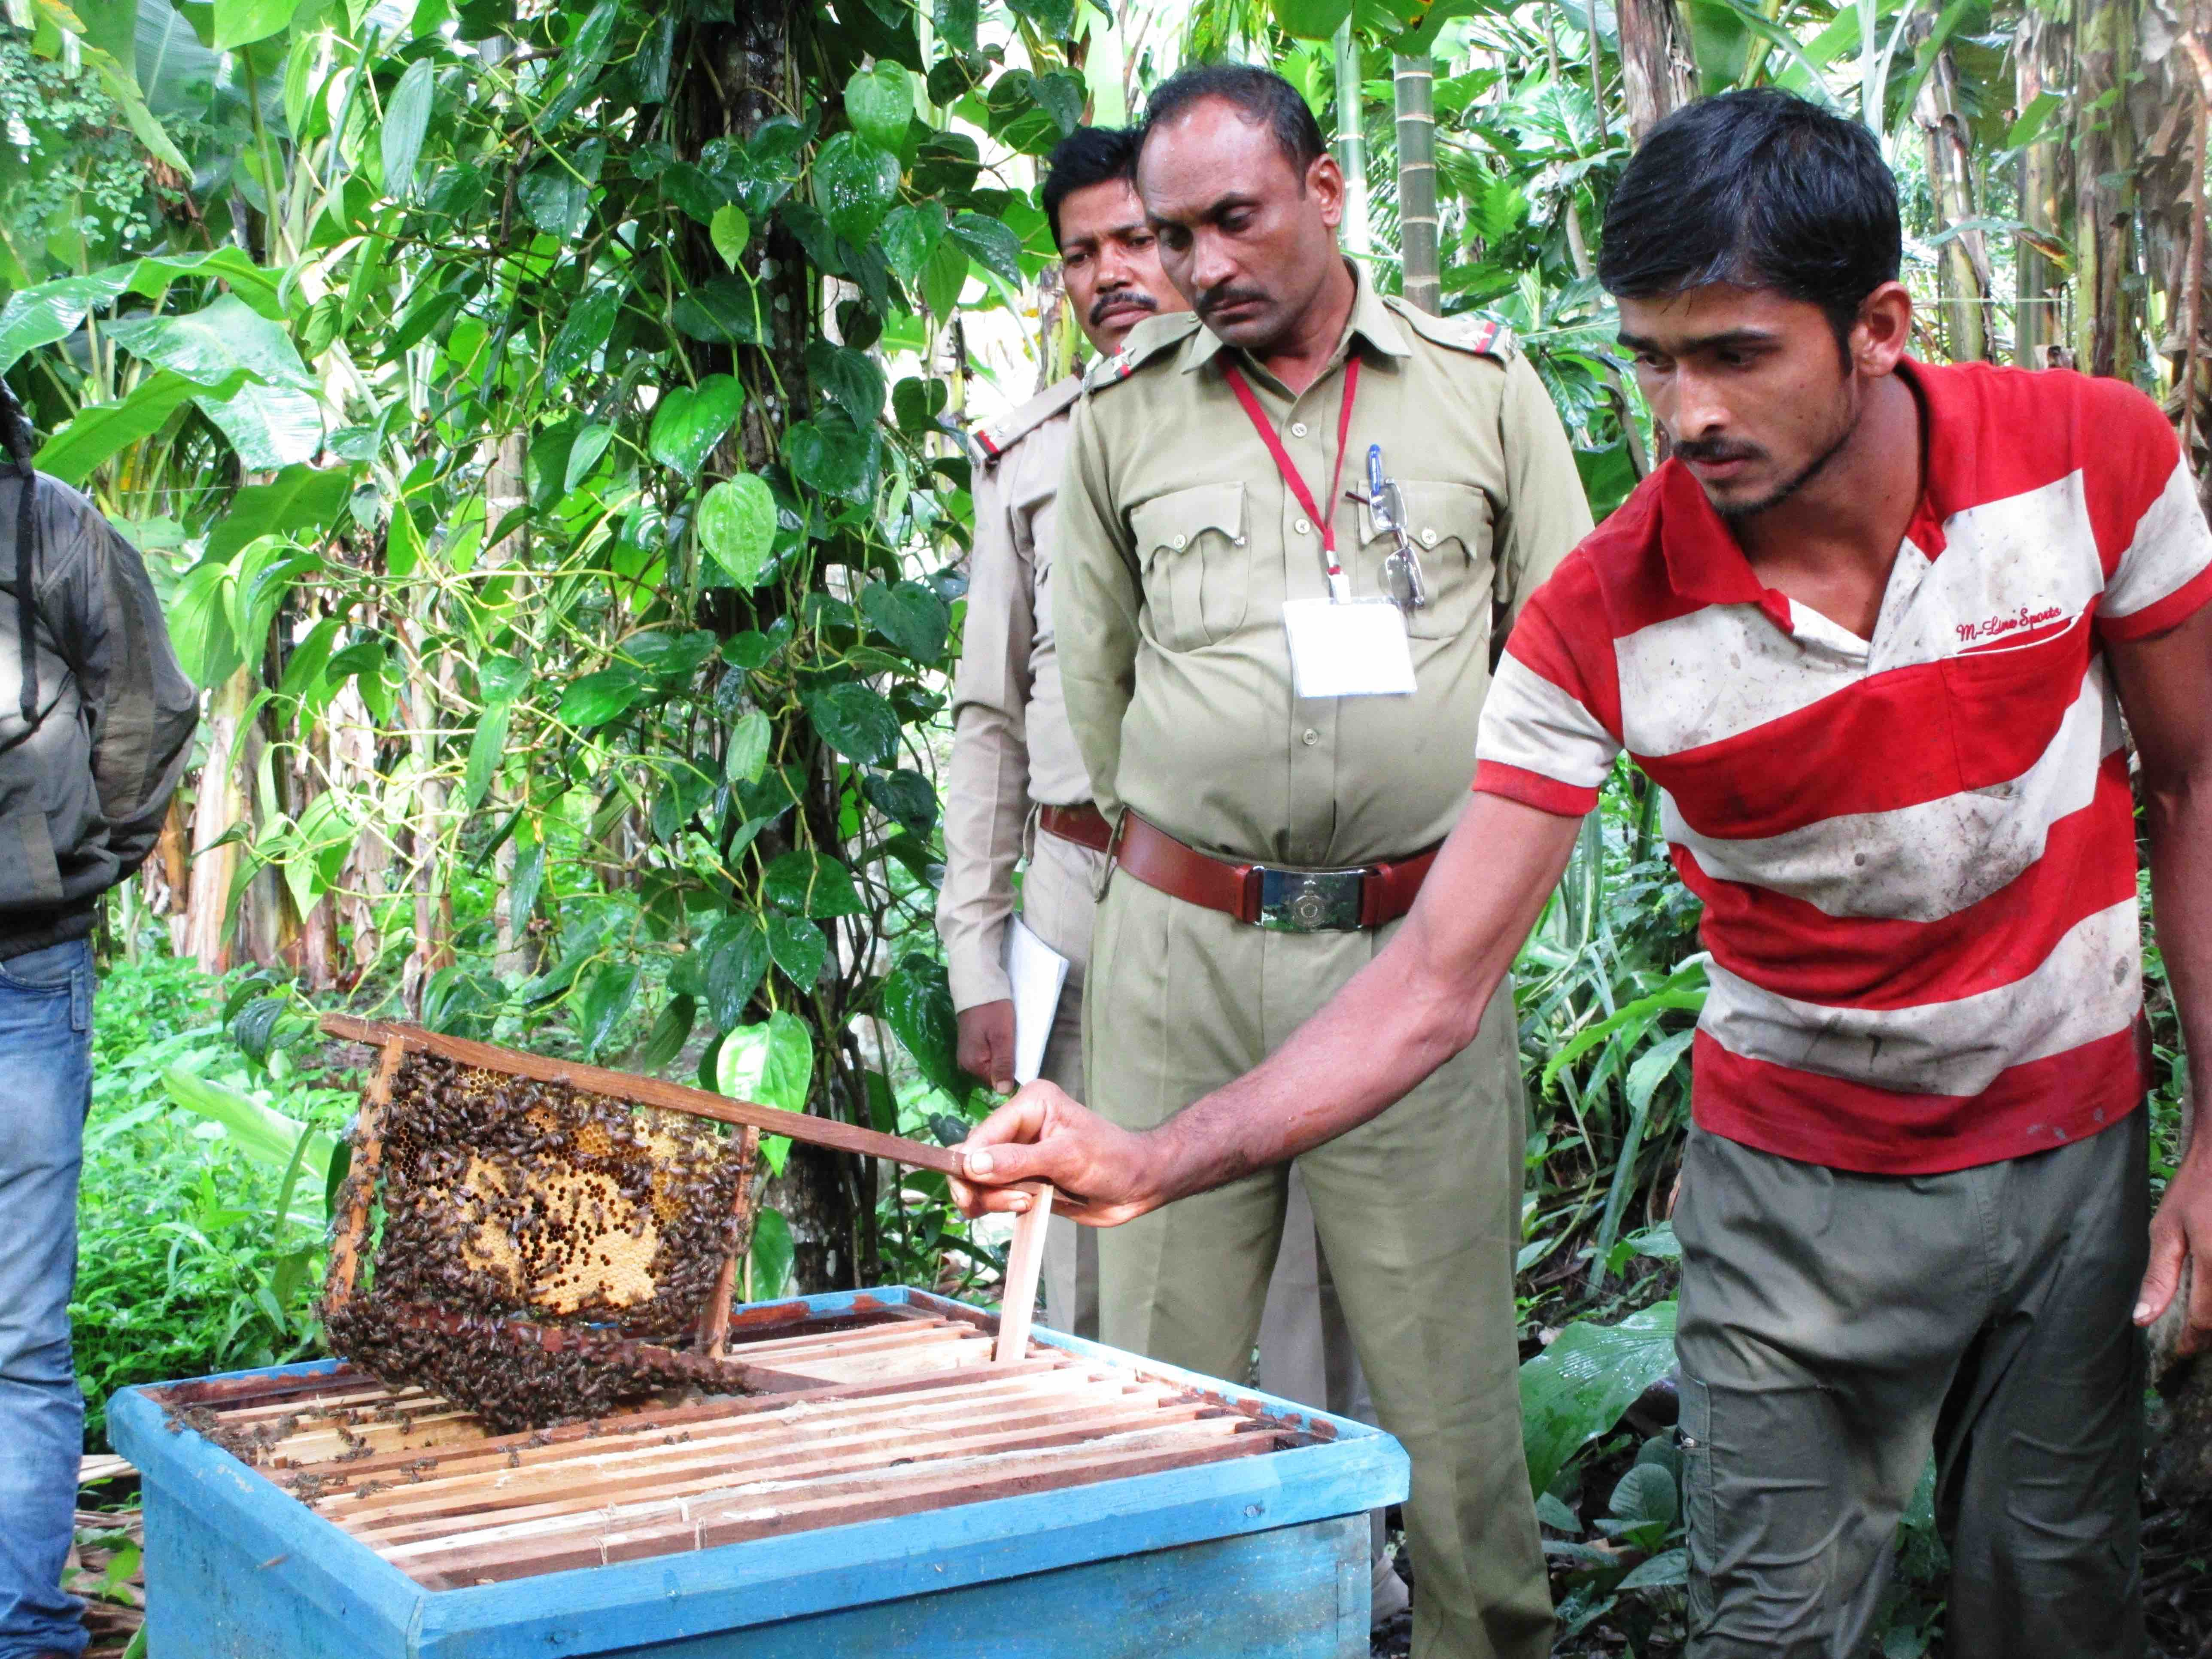 Experimenting with beehive fences to keep elephants away from their fields. Credit: Nidhi Jamwal